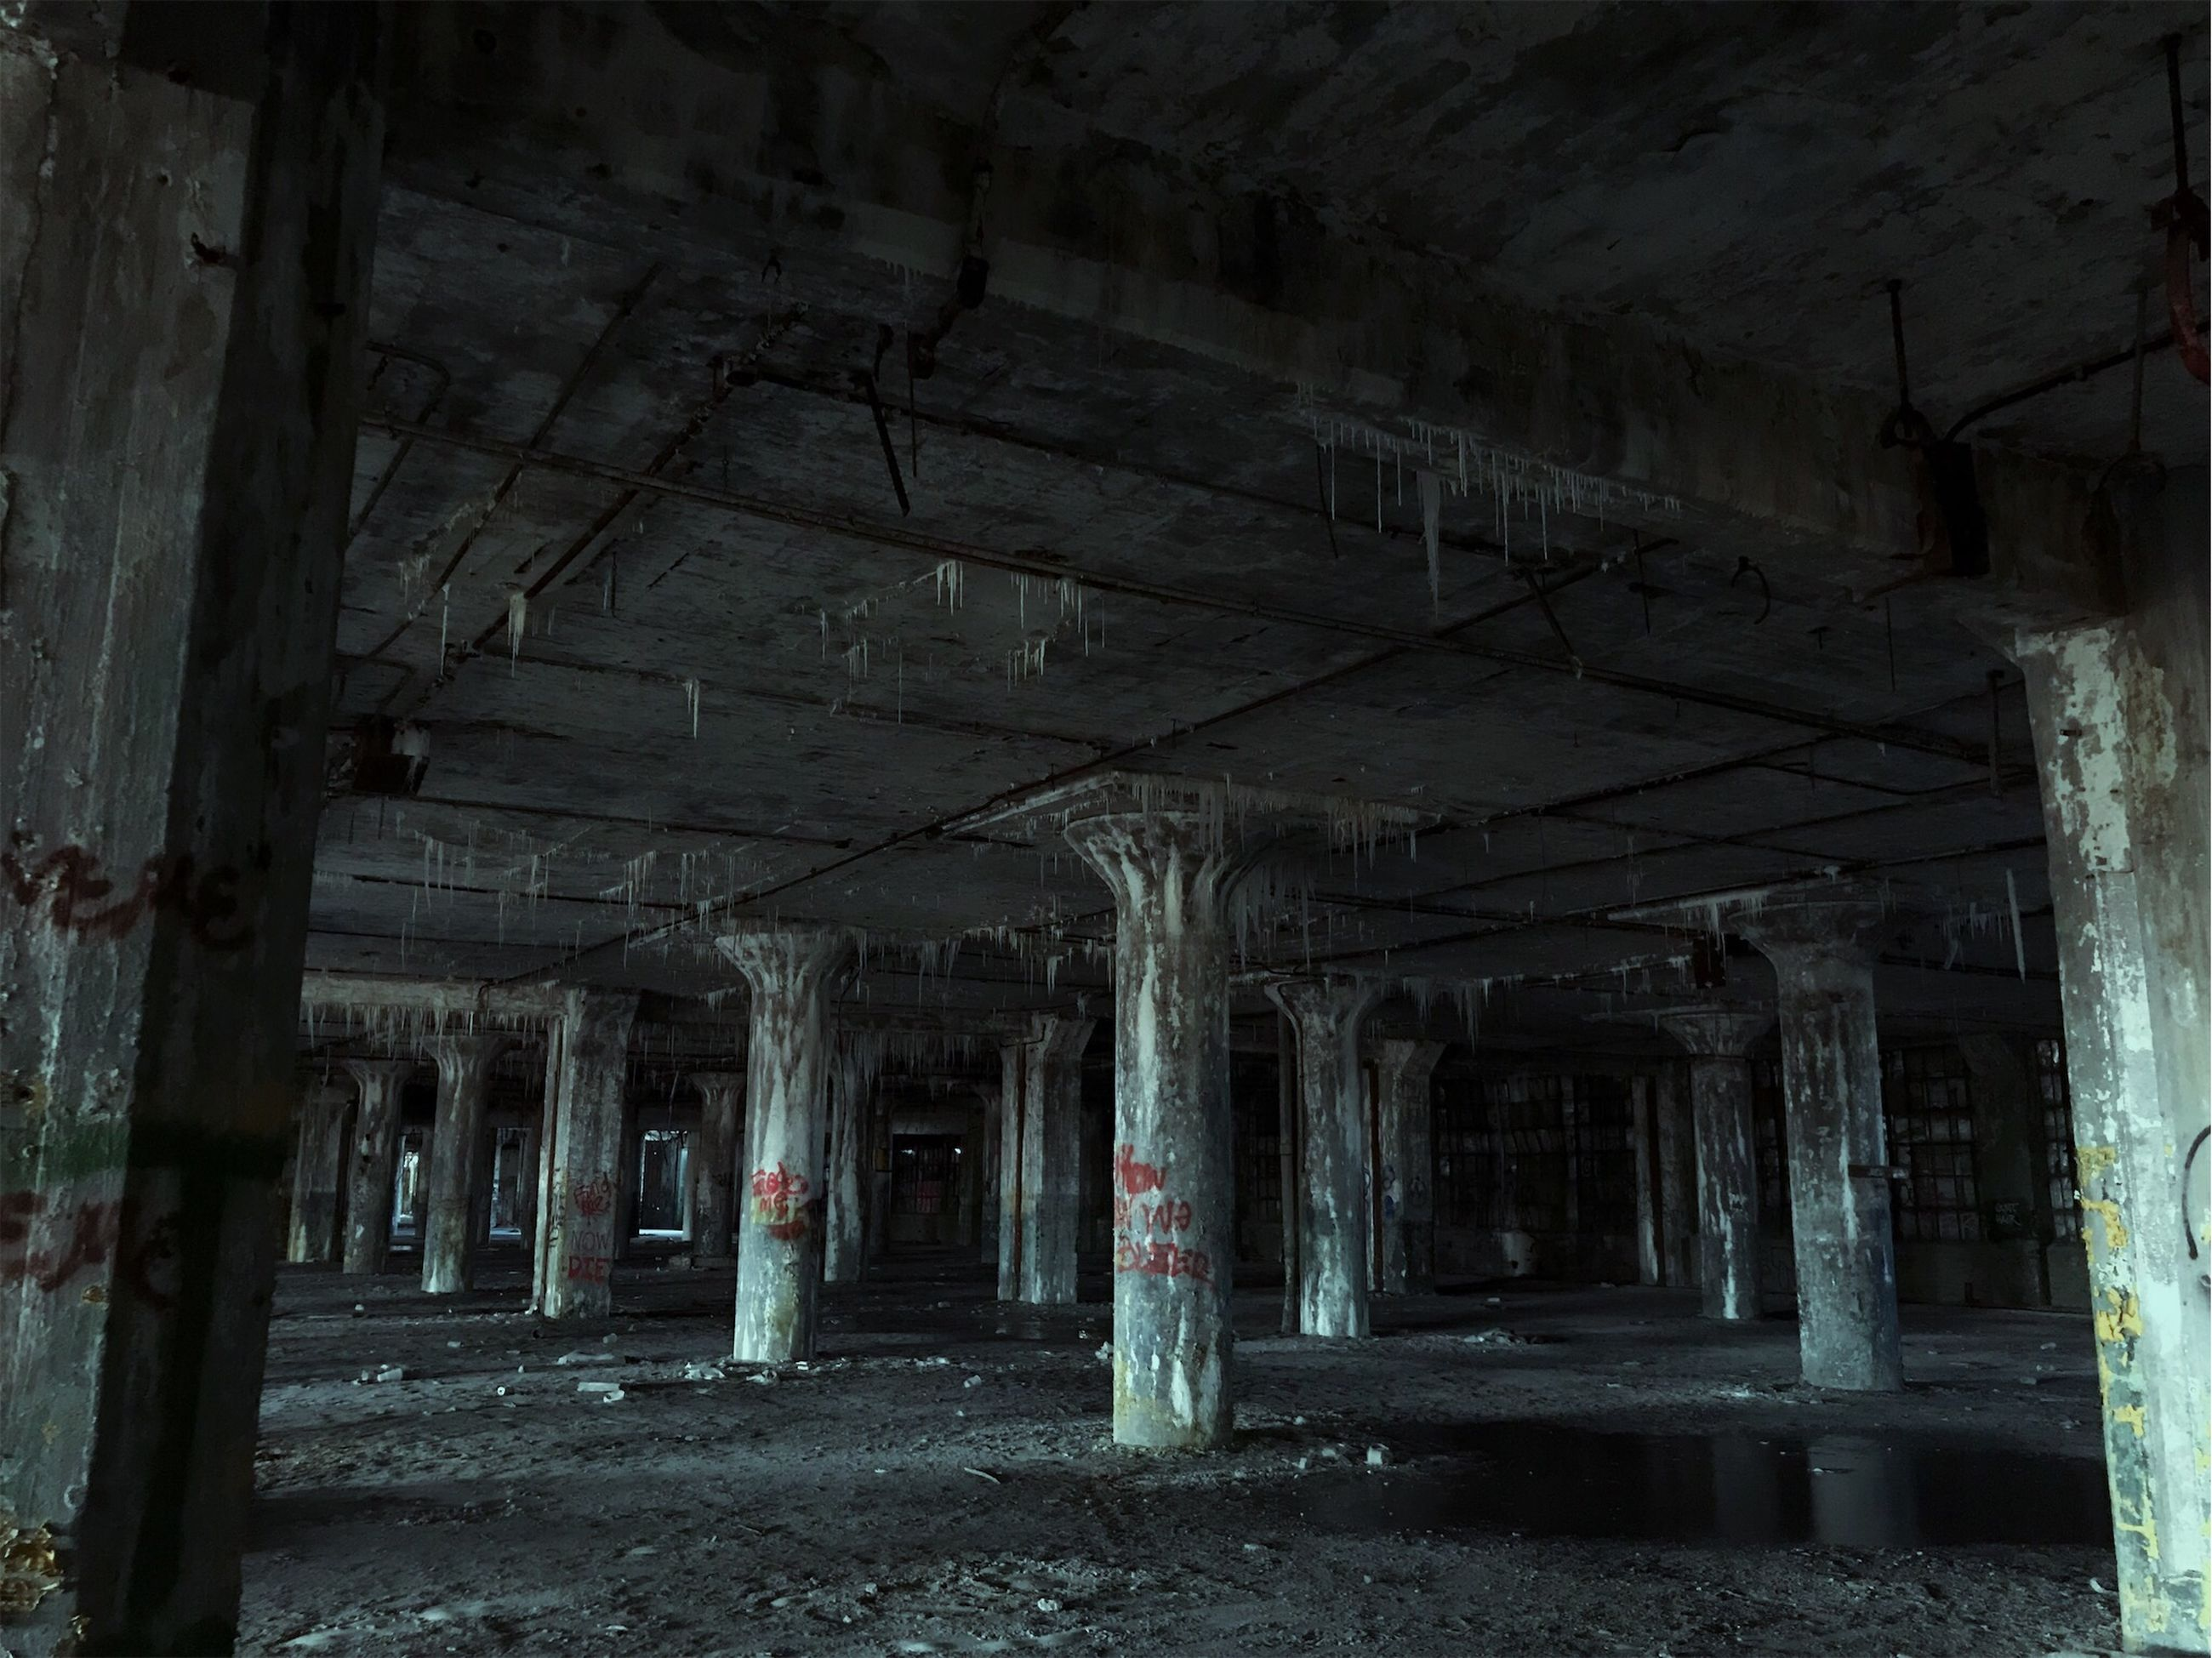 abandoned, architecture, built structure, obsolete, damaged, run-down, indoors, building, old, no people, architectural column, weathered, dirty, history, dirt, empty, bad condition, ruined, decline, destruction, deterioration, ceiling, demolished